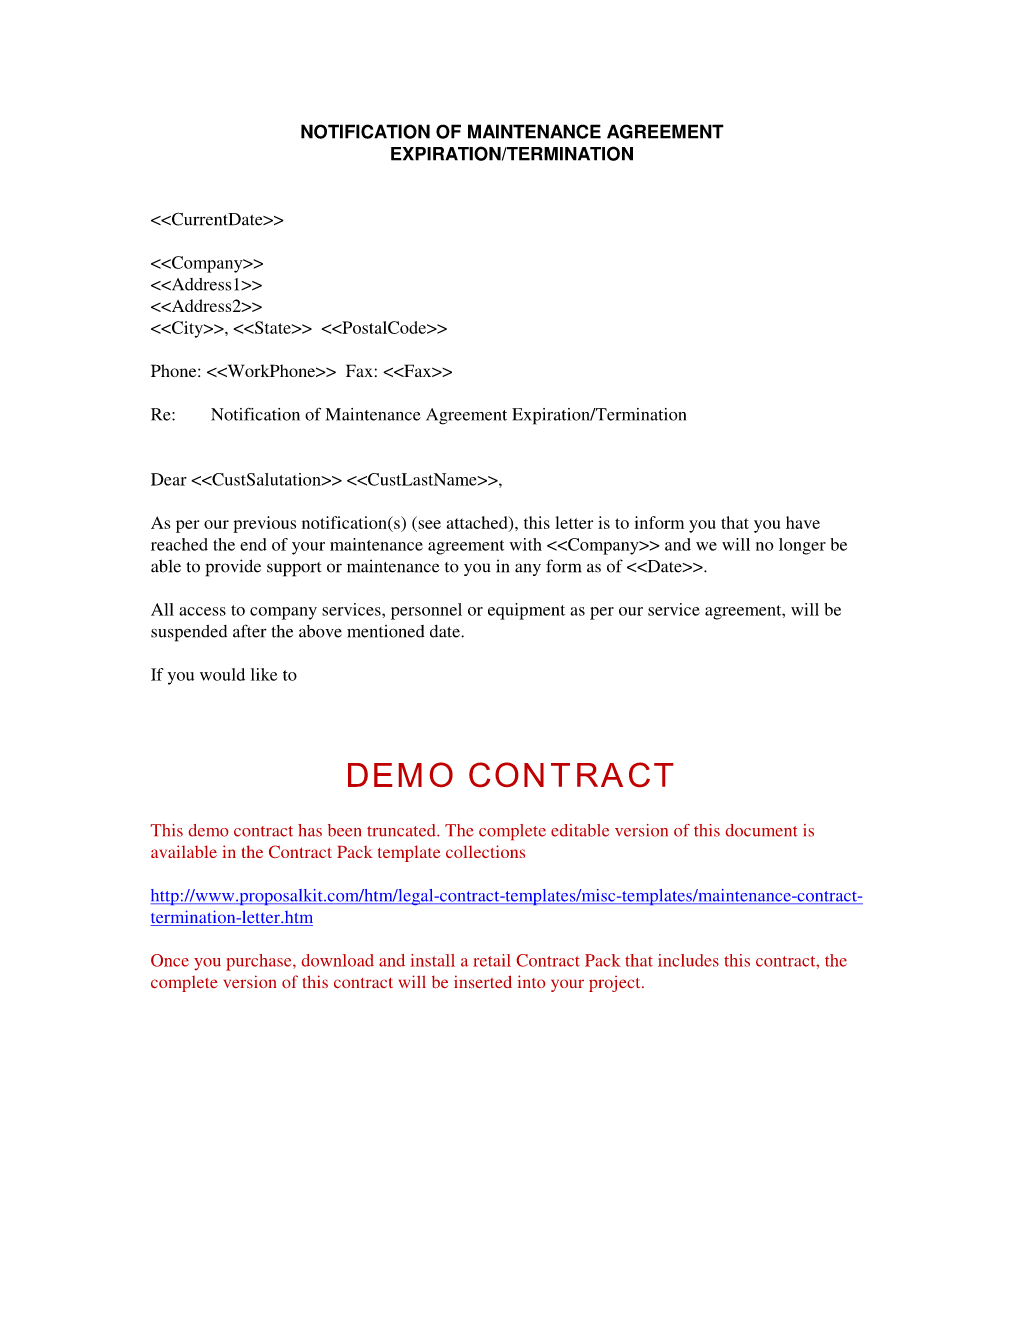 Contract Termination Letter Samples Zoro Blaszczak Fascinating